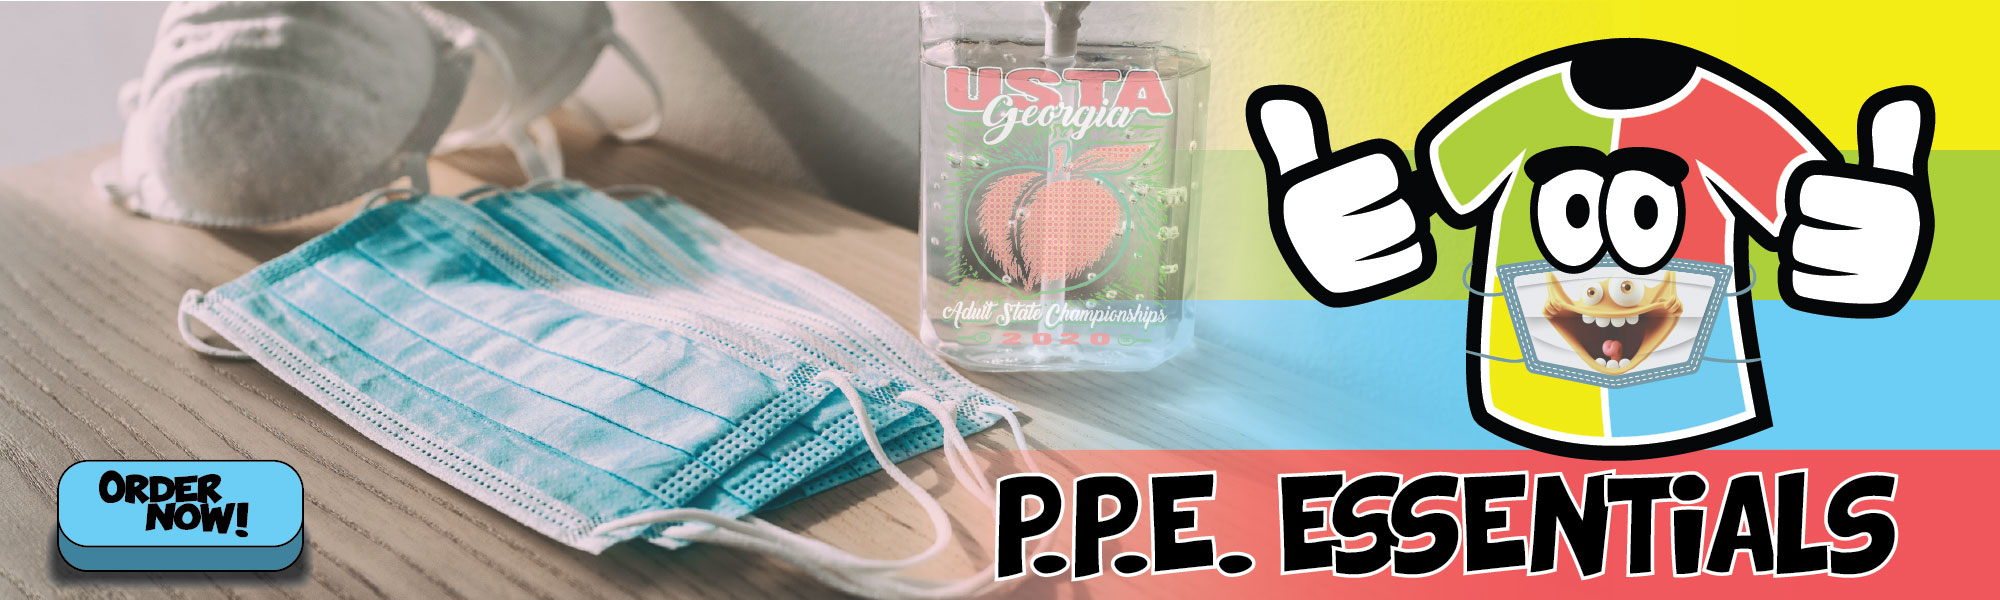 PPE Banner